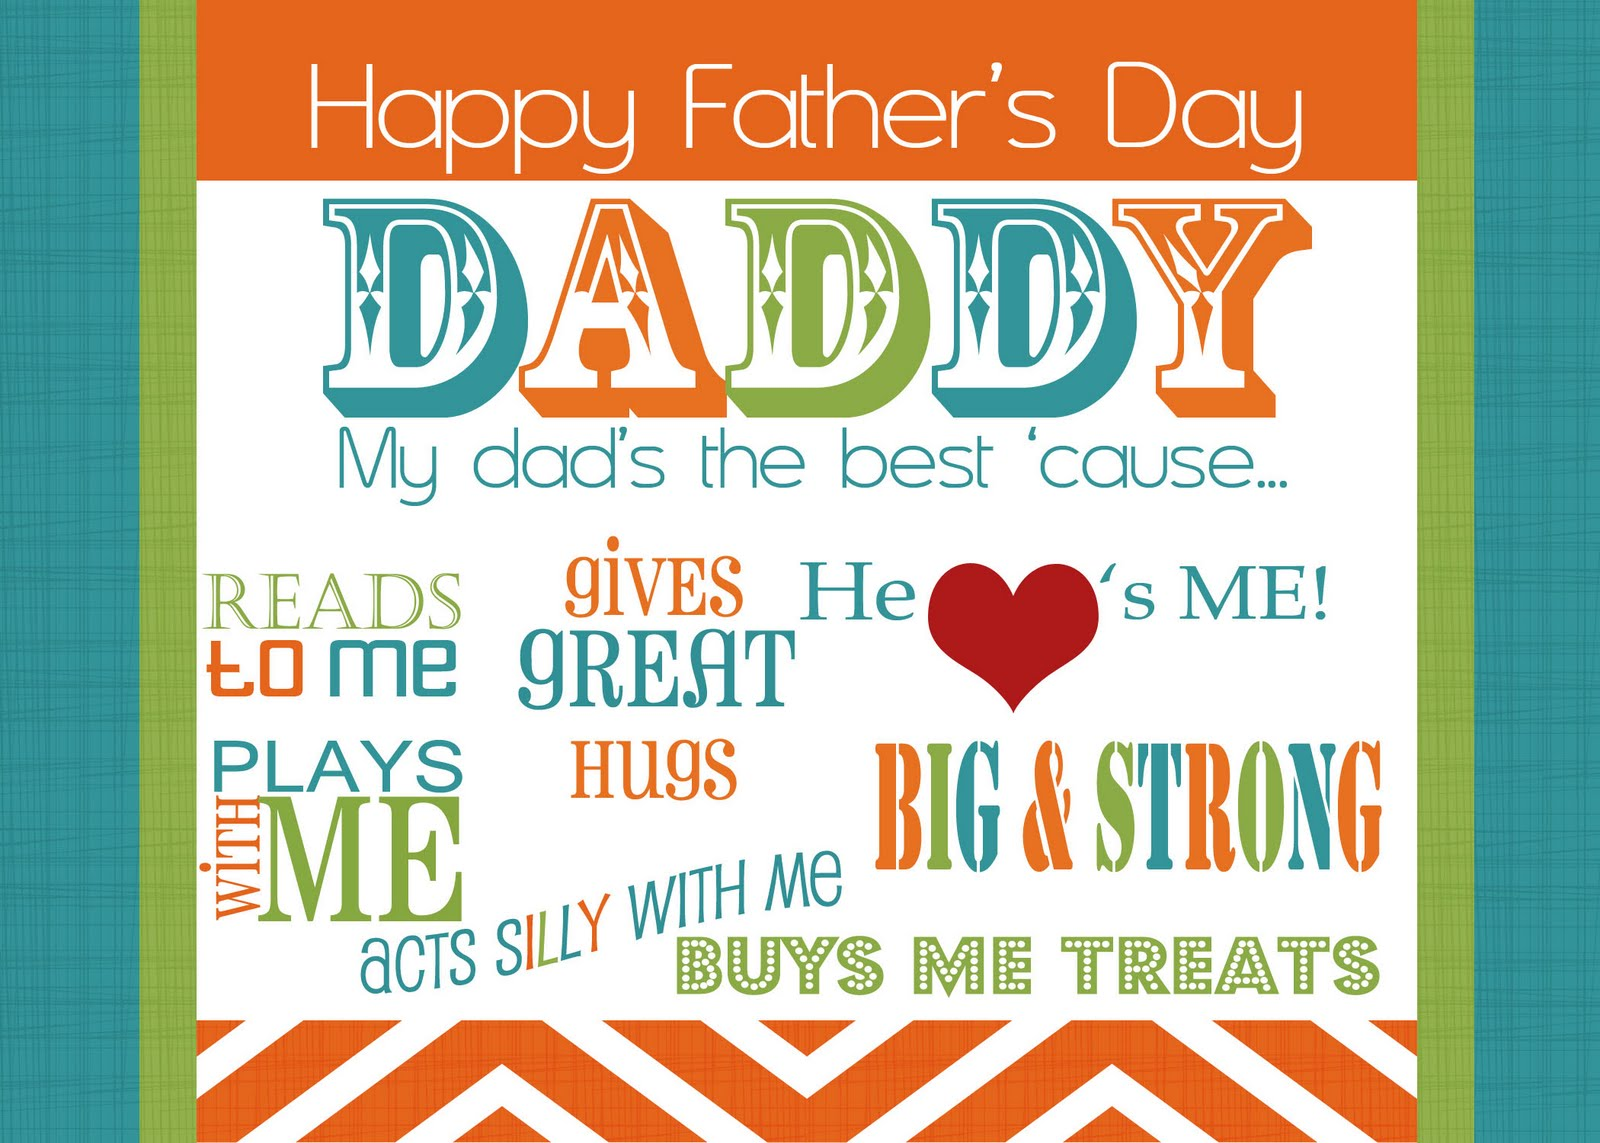 Special splandid fathers day hd cards from son daughter with fathers day hd cards from son daughter with best quotes m4hsunfo Image collections